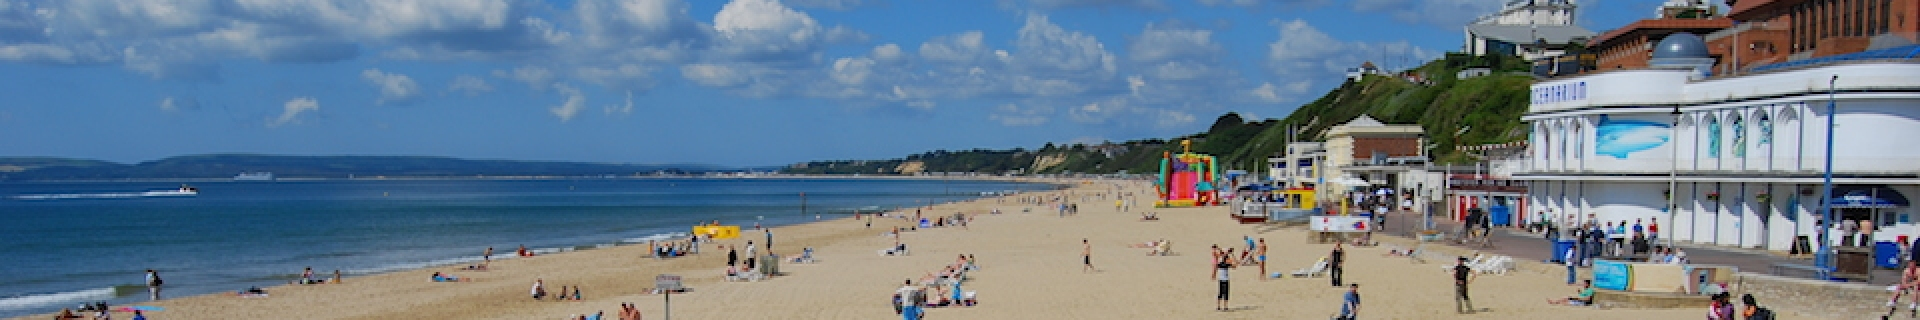 Banner image for Bournemouth West